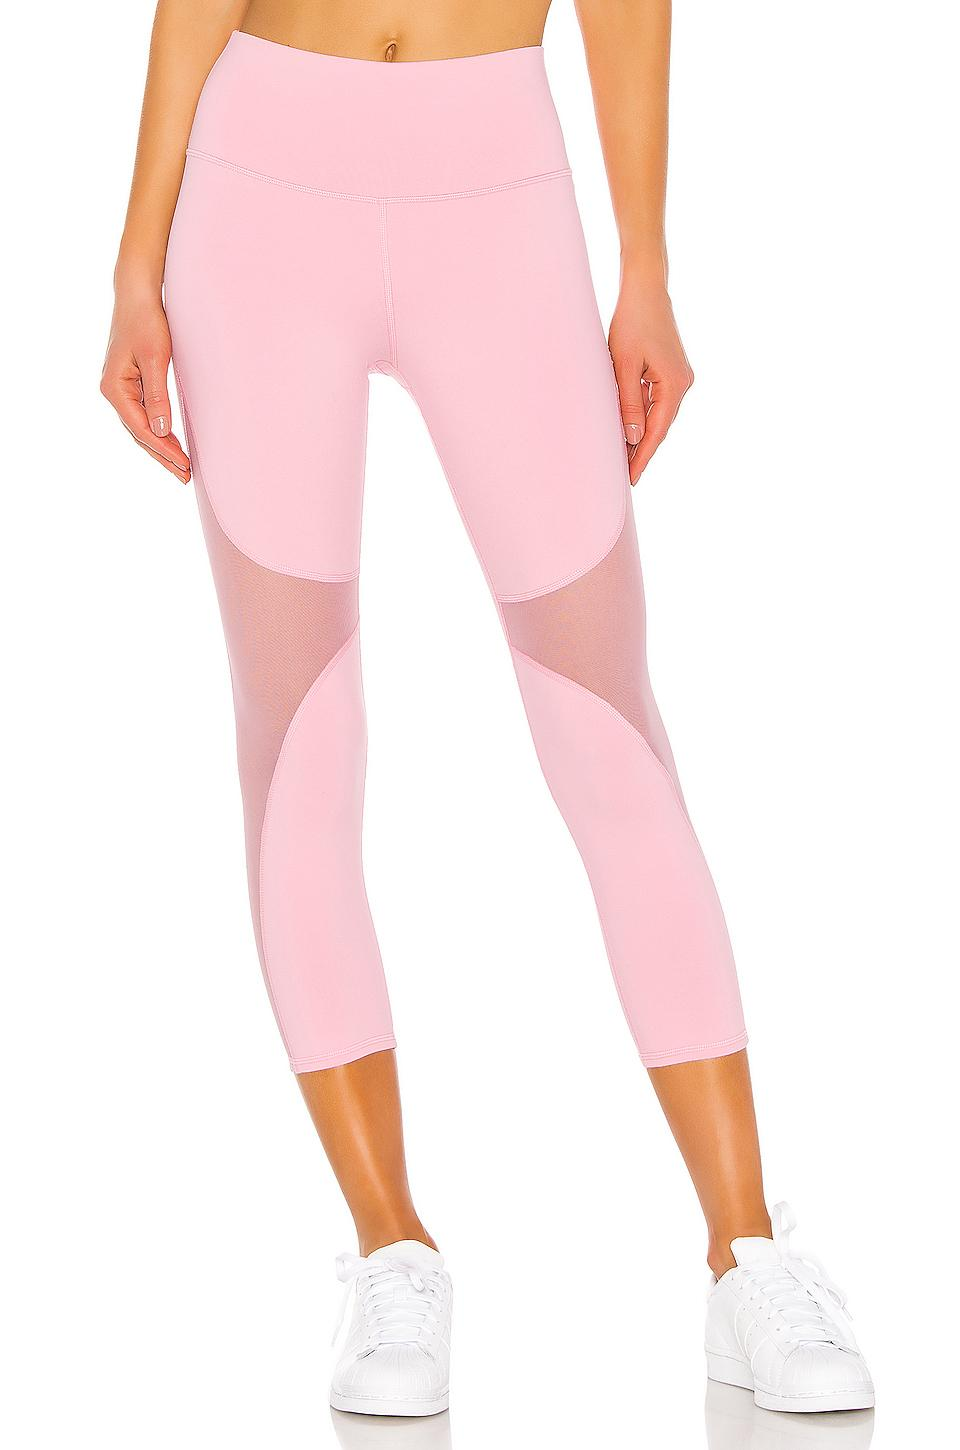 6a879f9377cfe0 Lyst - Alo Yoga High Waist Coast Capri in Pink